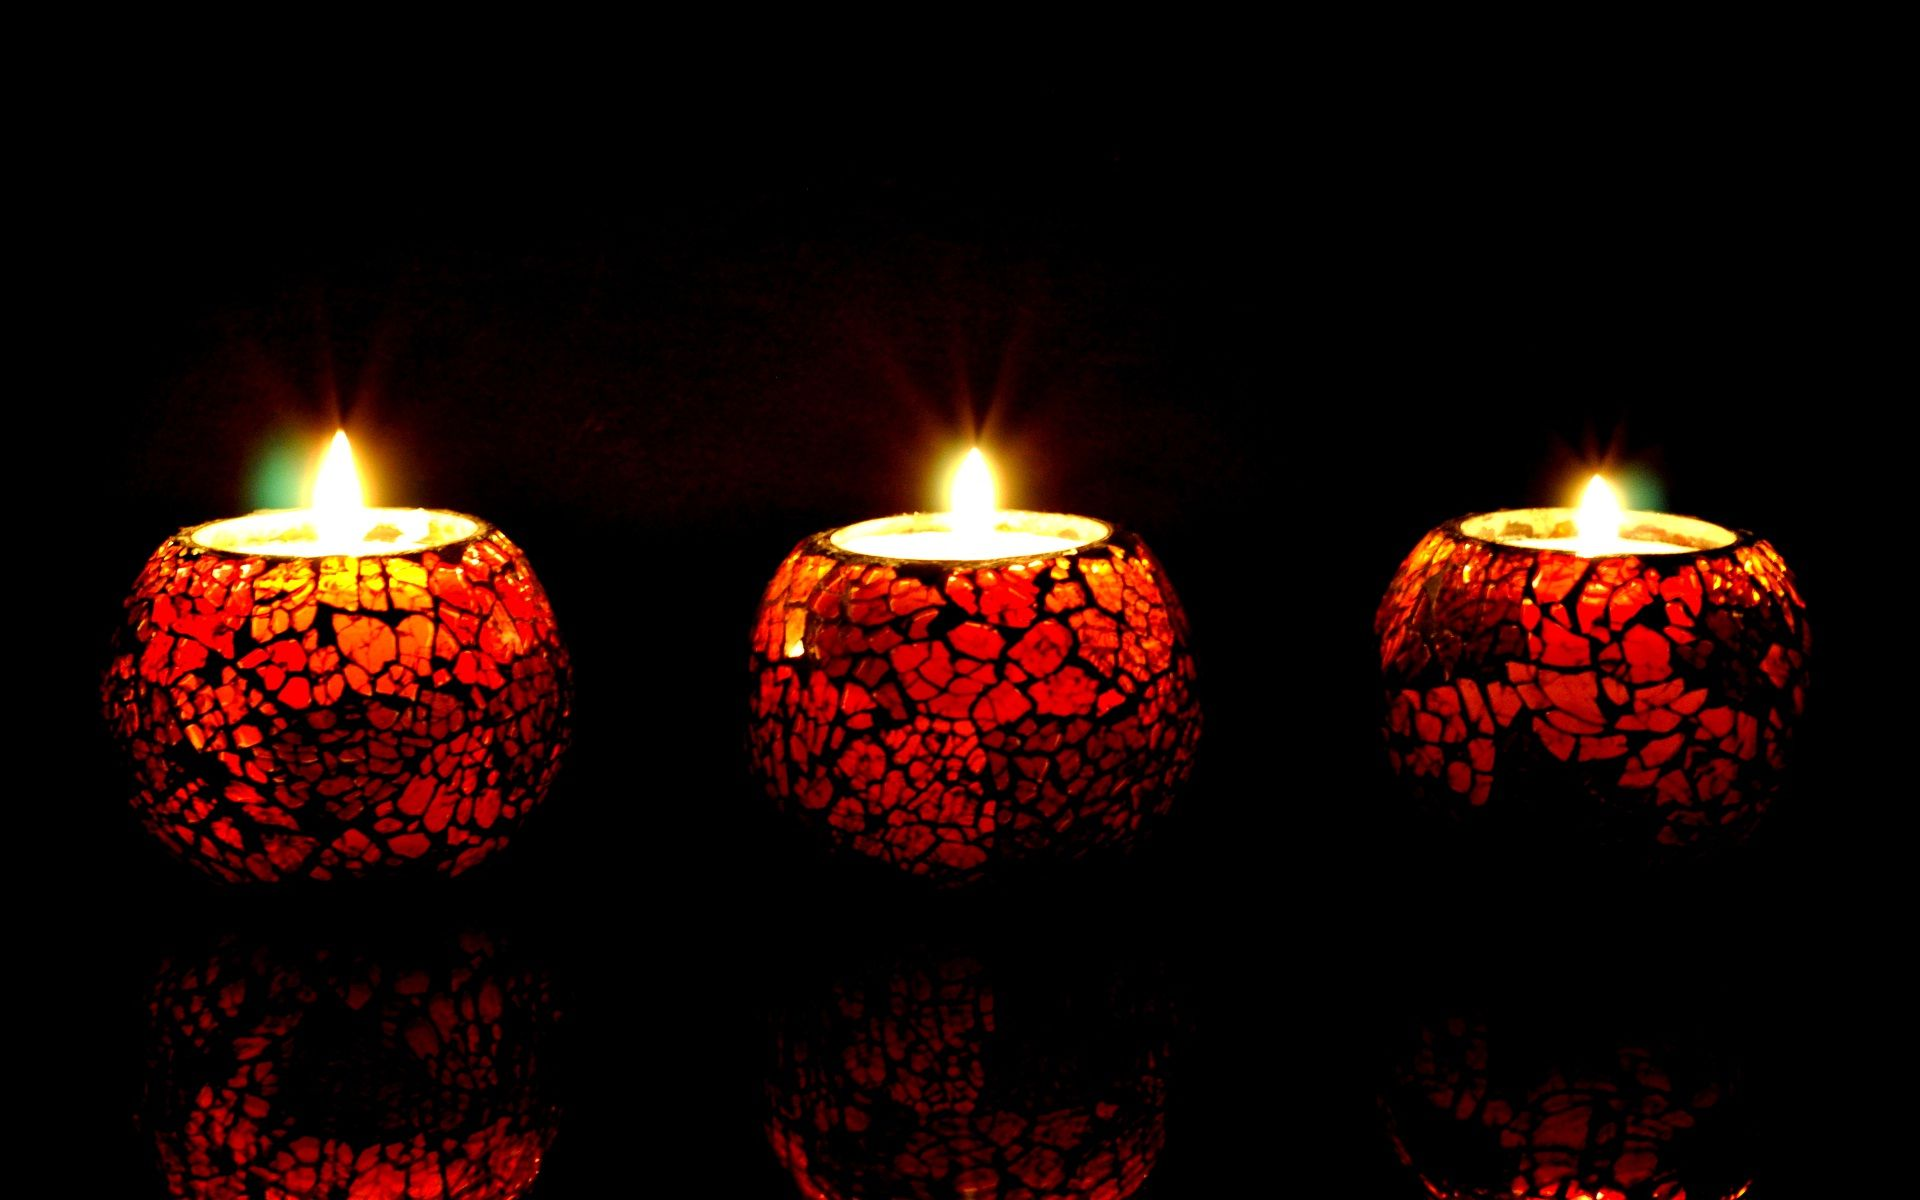 Beautiful-candle-lights-in- | MumlaR | Pinterest | Wallpaper and ... for Heart Candle Wallpaper  166kxo